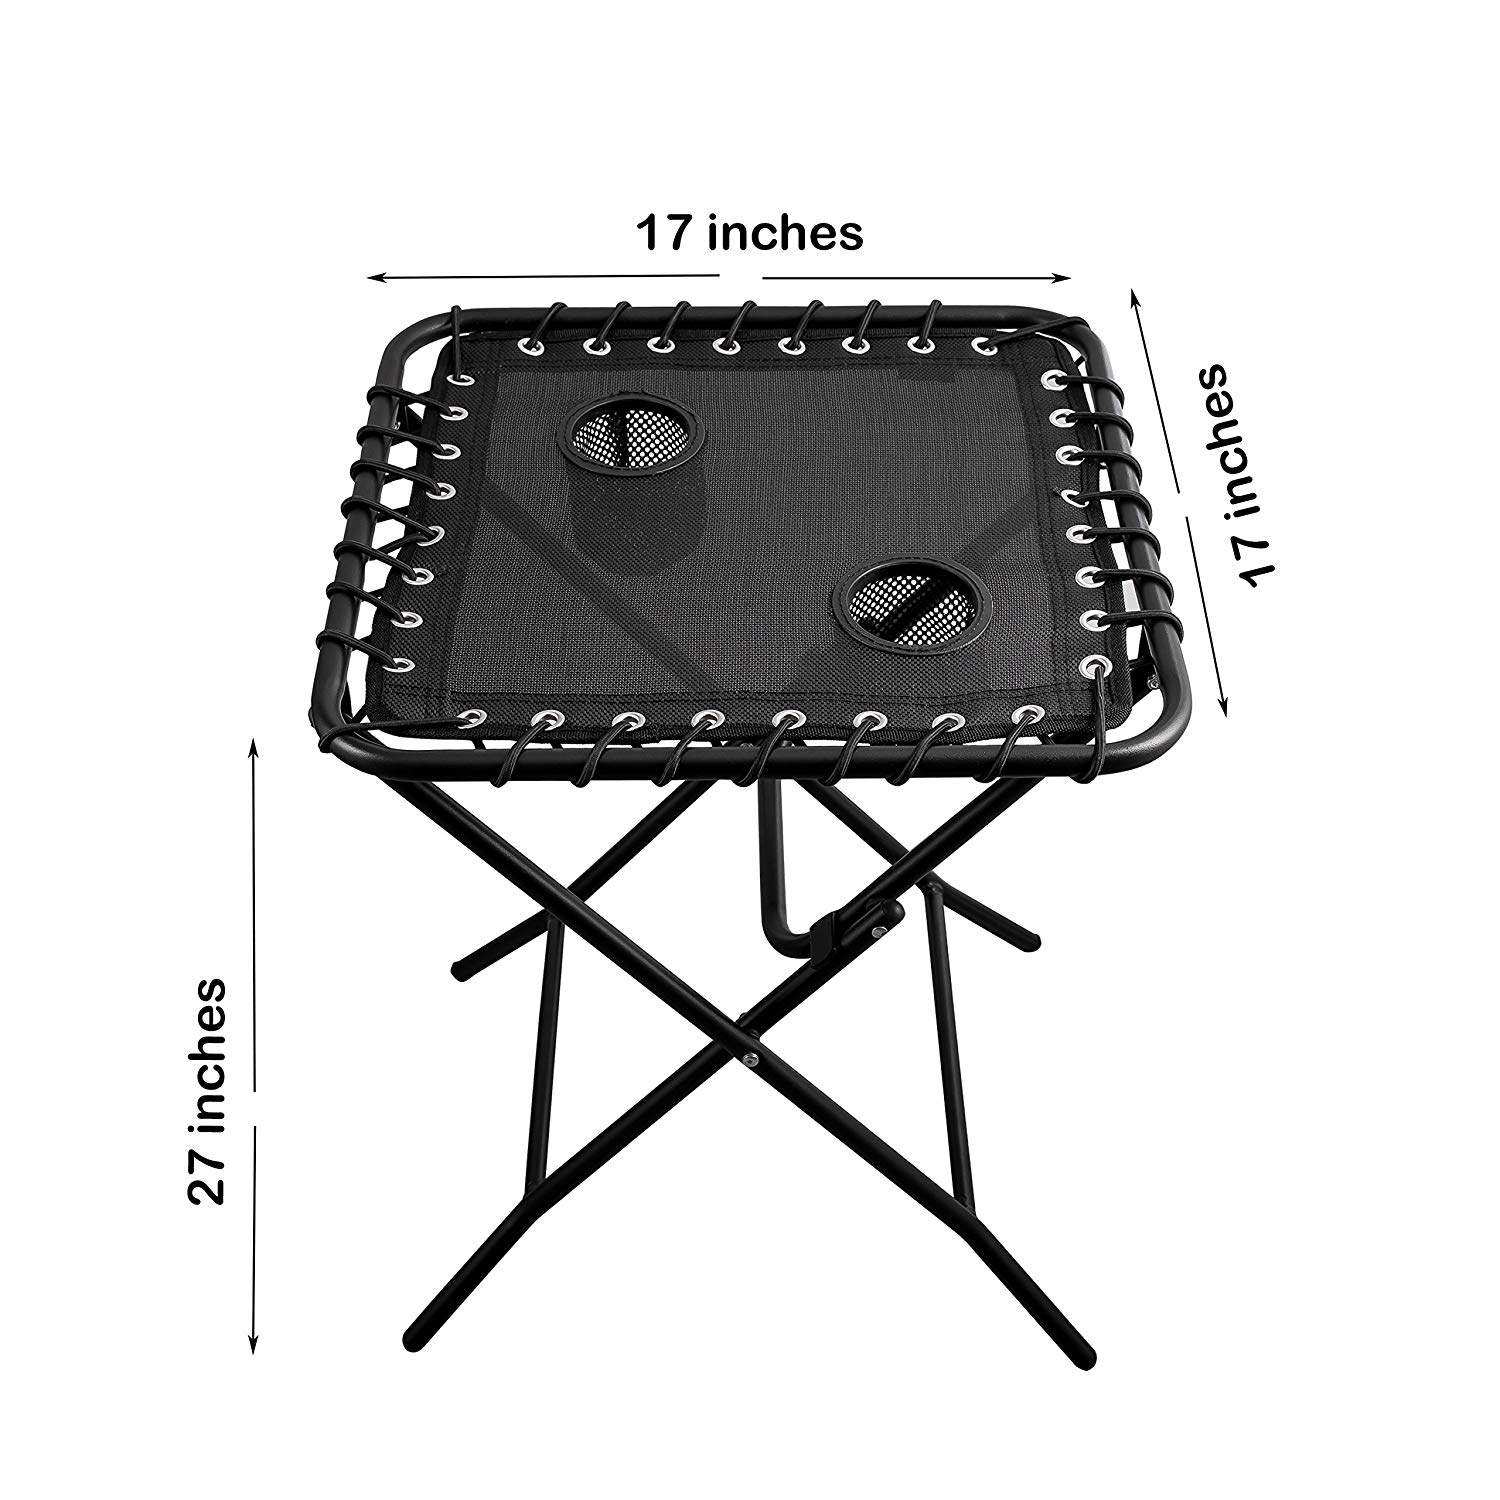 outdoor side table patio folding heavy duty coffee metal with cup holders for nic outdoors garden small battery operated accent lamps furniture couch runner quilt patterns new